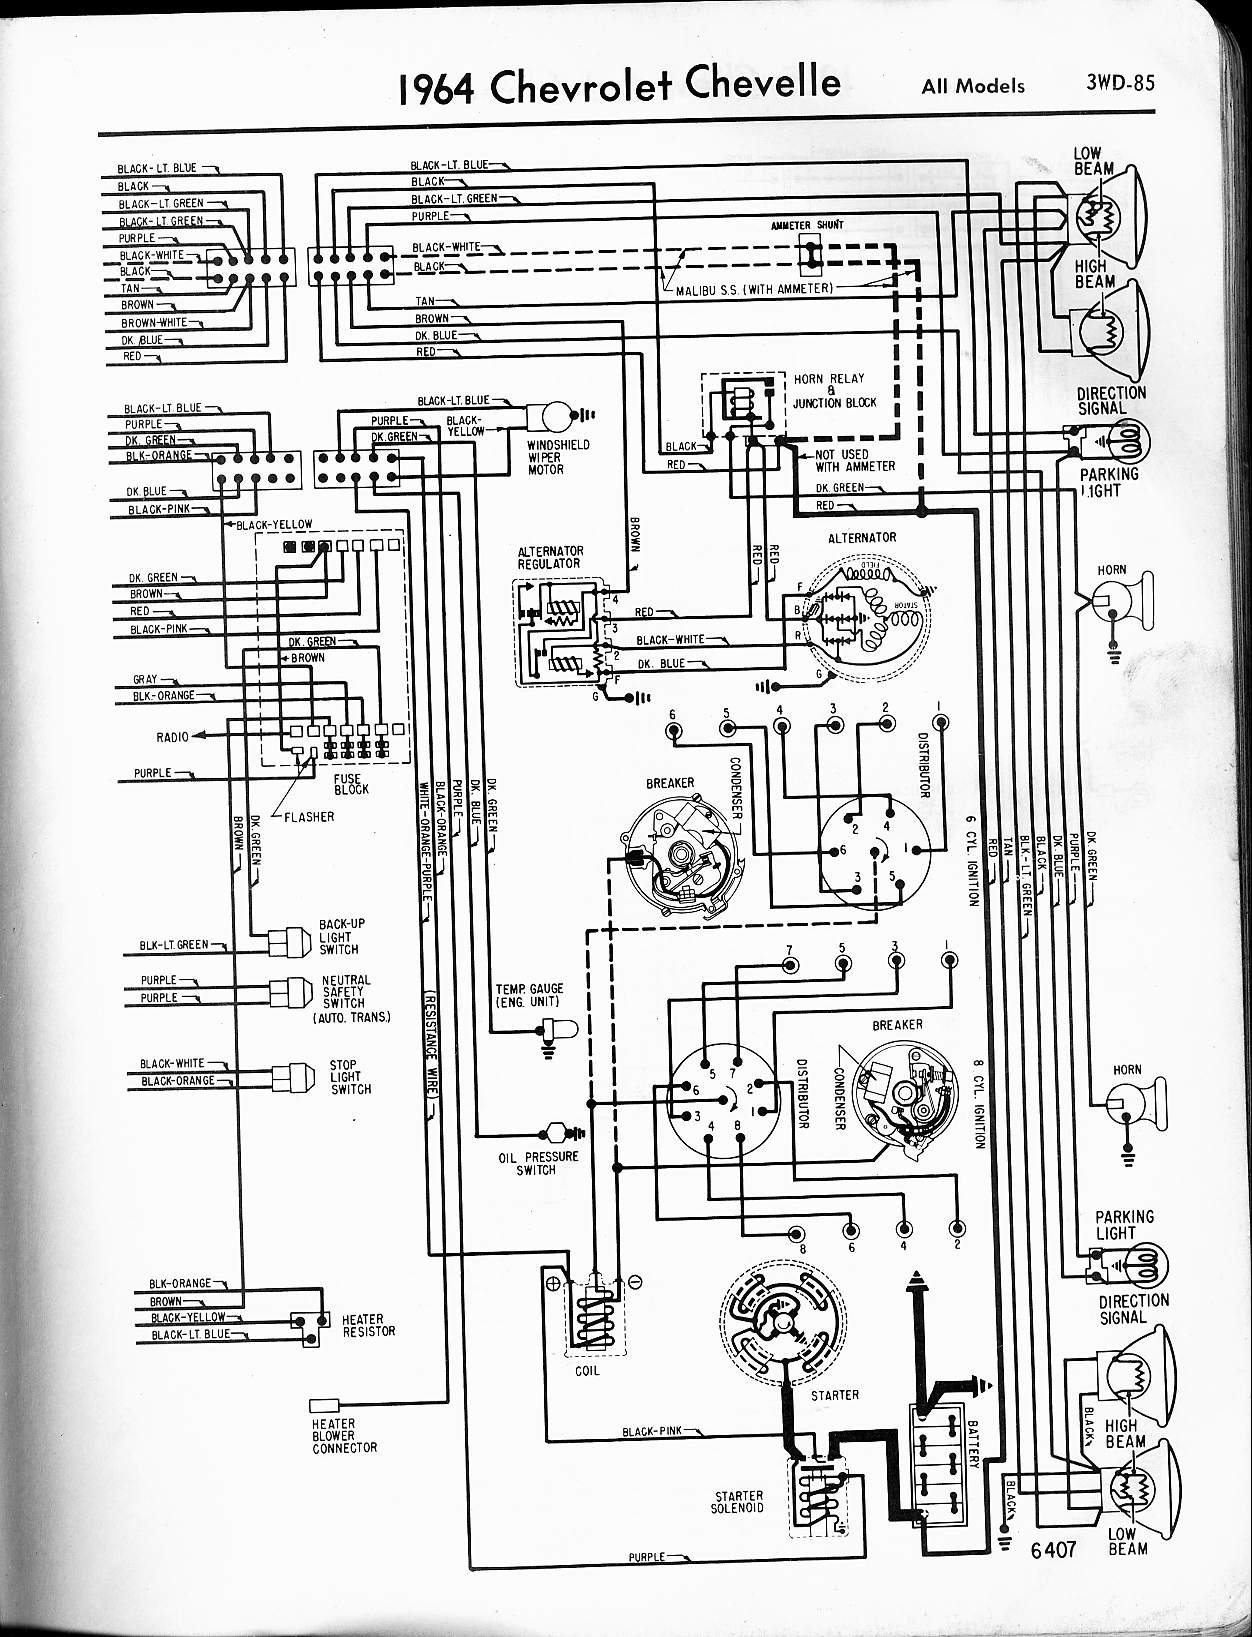 MWireChev64_3WD 085 1969 chevelle wiring diagram pdf 1969 thunderbird dash wiring 1967 olds 442 wiring diagram at gsmx.co